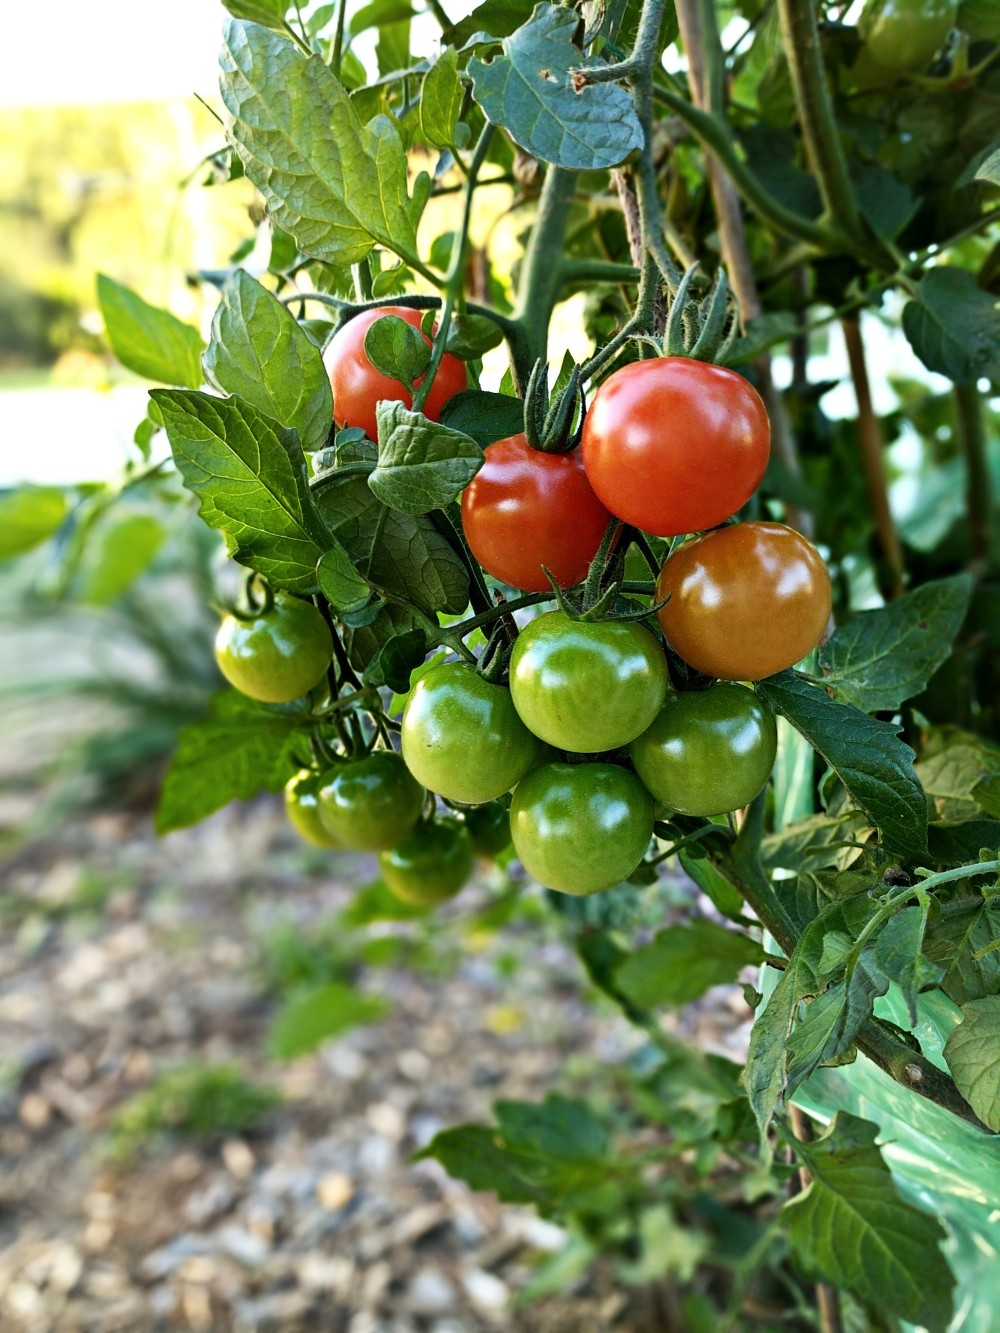 Backyard Garden vegetables are the source of ingredients